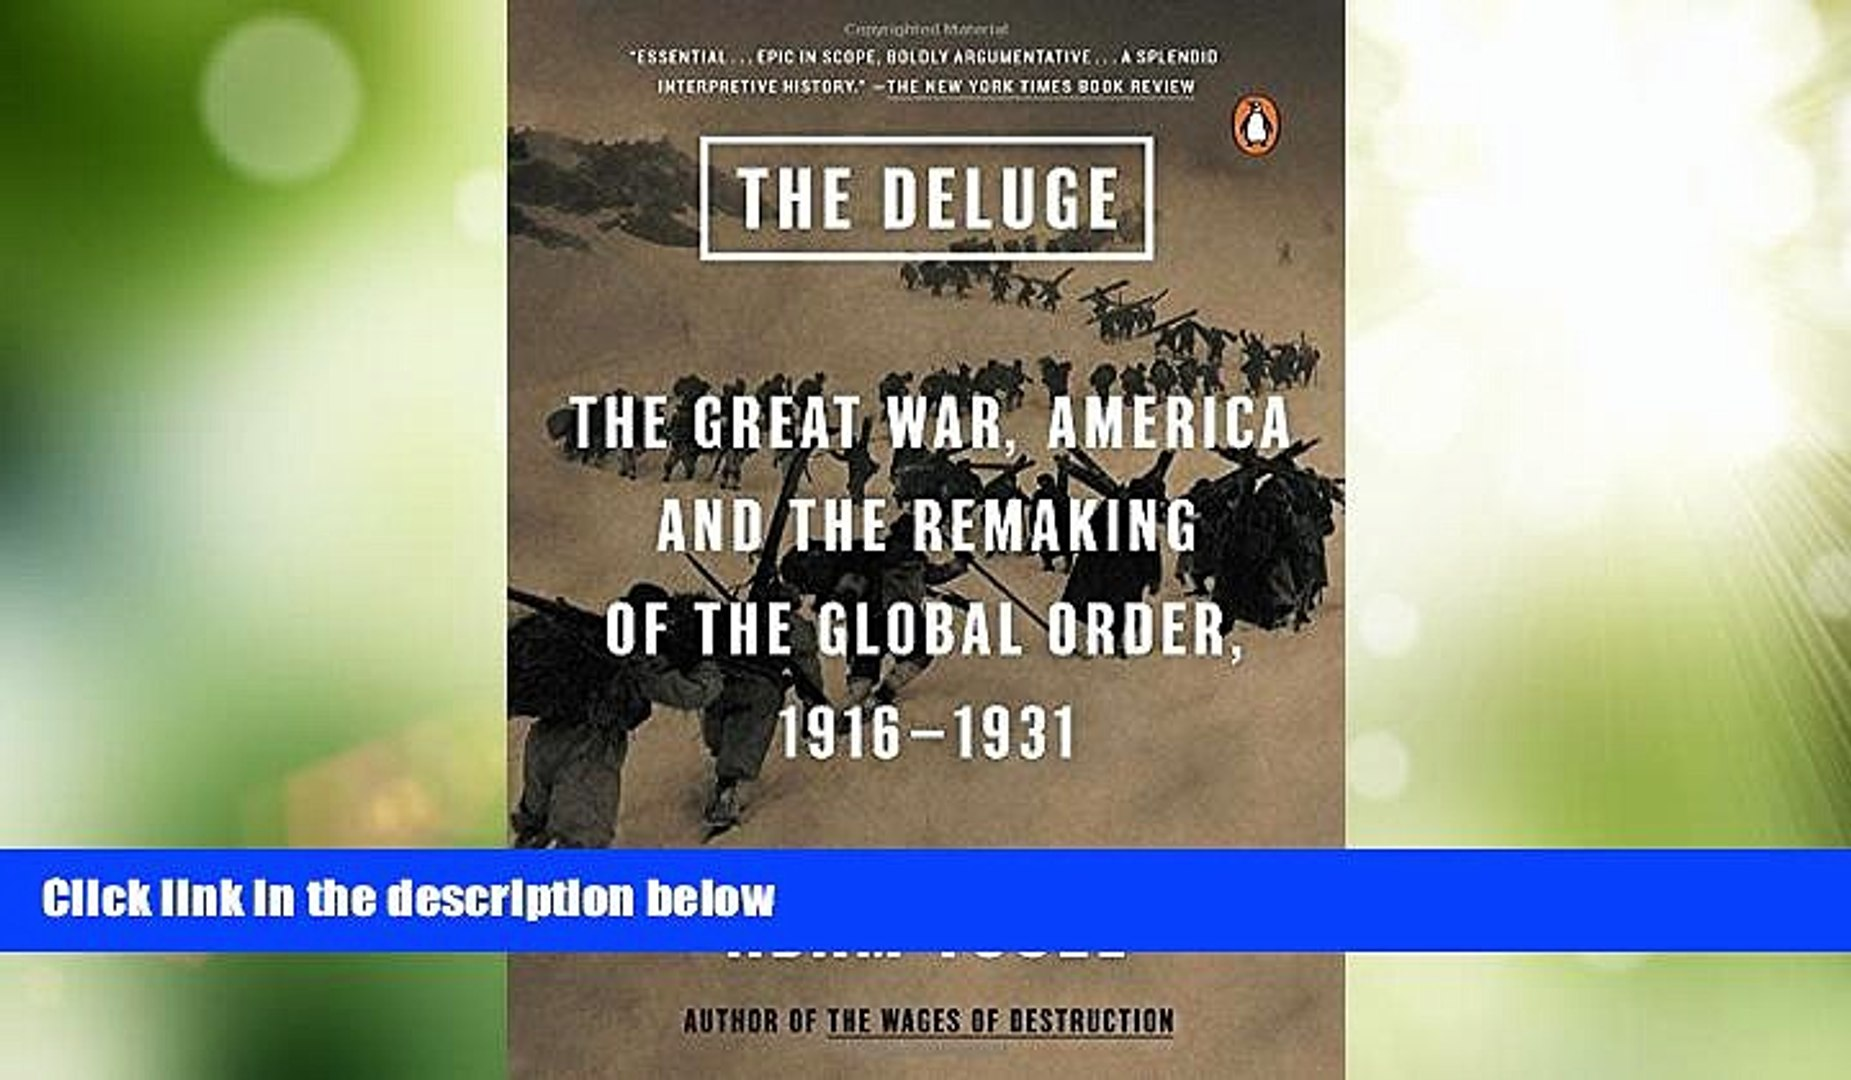 Big Deals  The Deluge: The Great War, America and the Remaking of the Global Order, 1916-1931